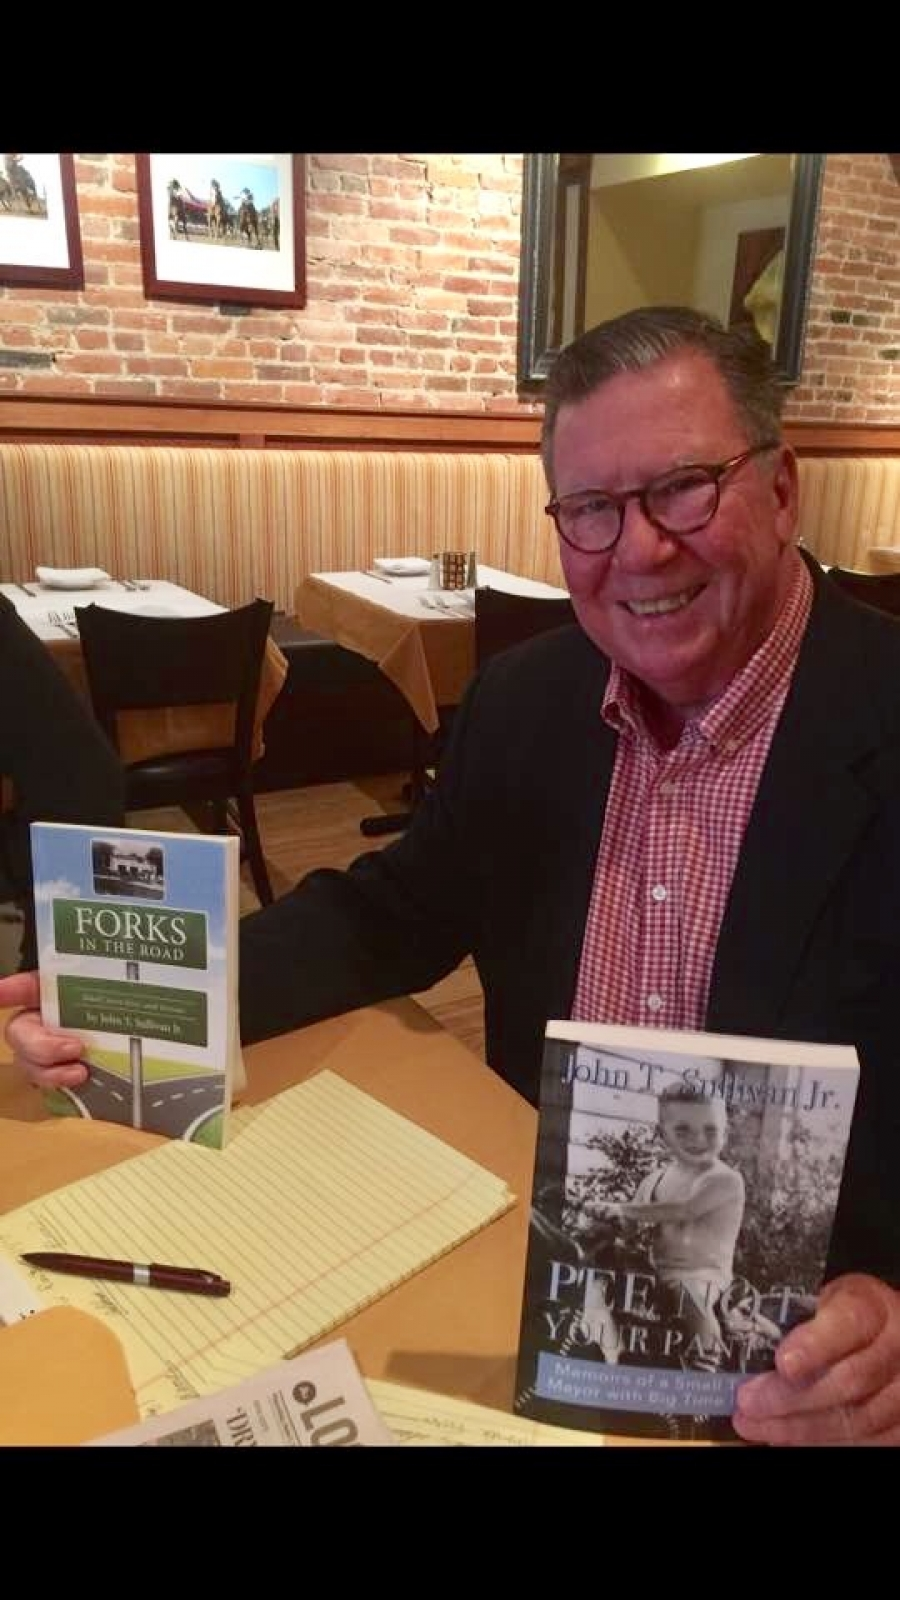 John Sullivan discusses his new book about politics in NYS